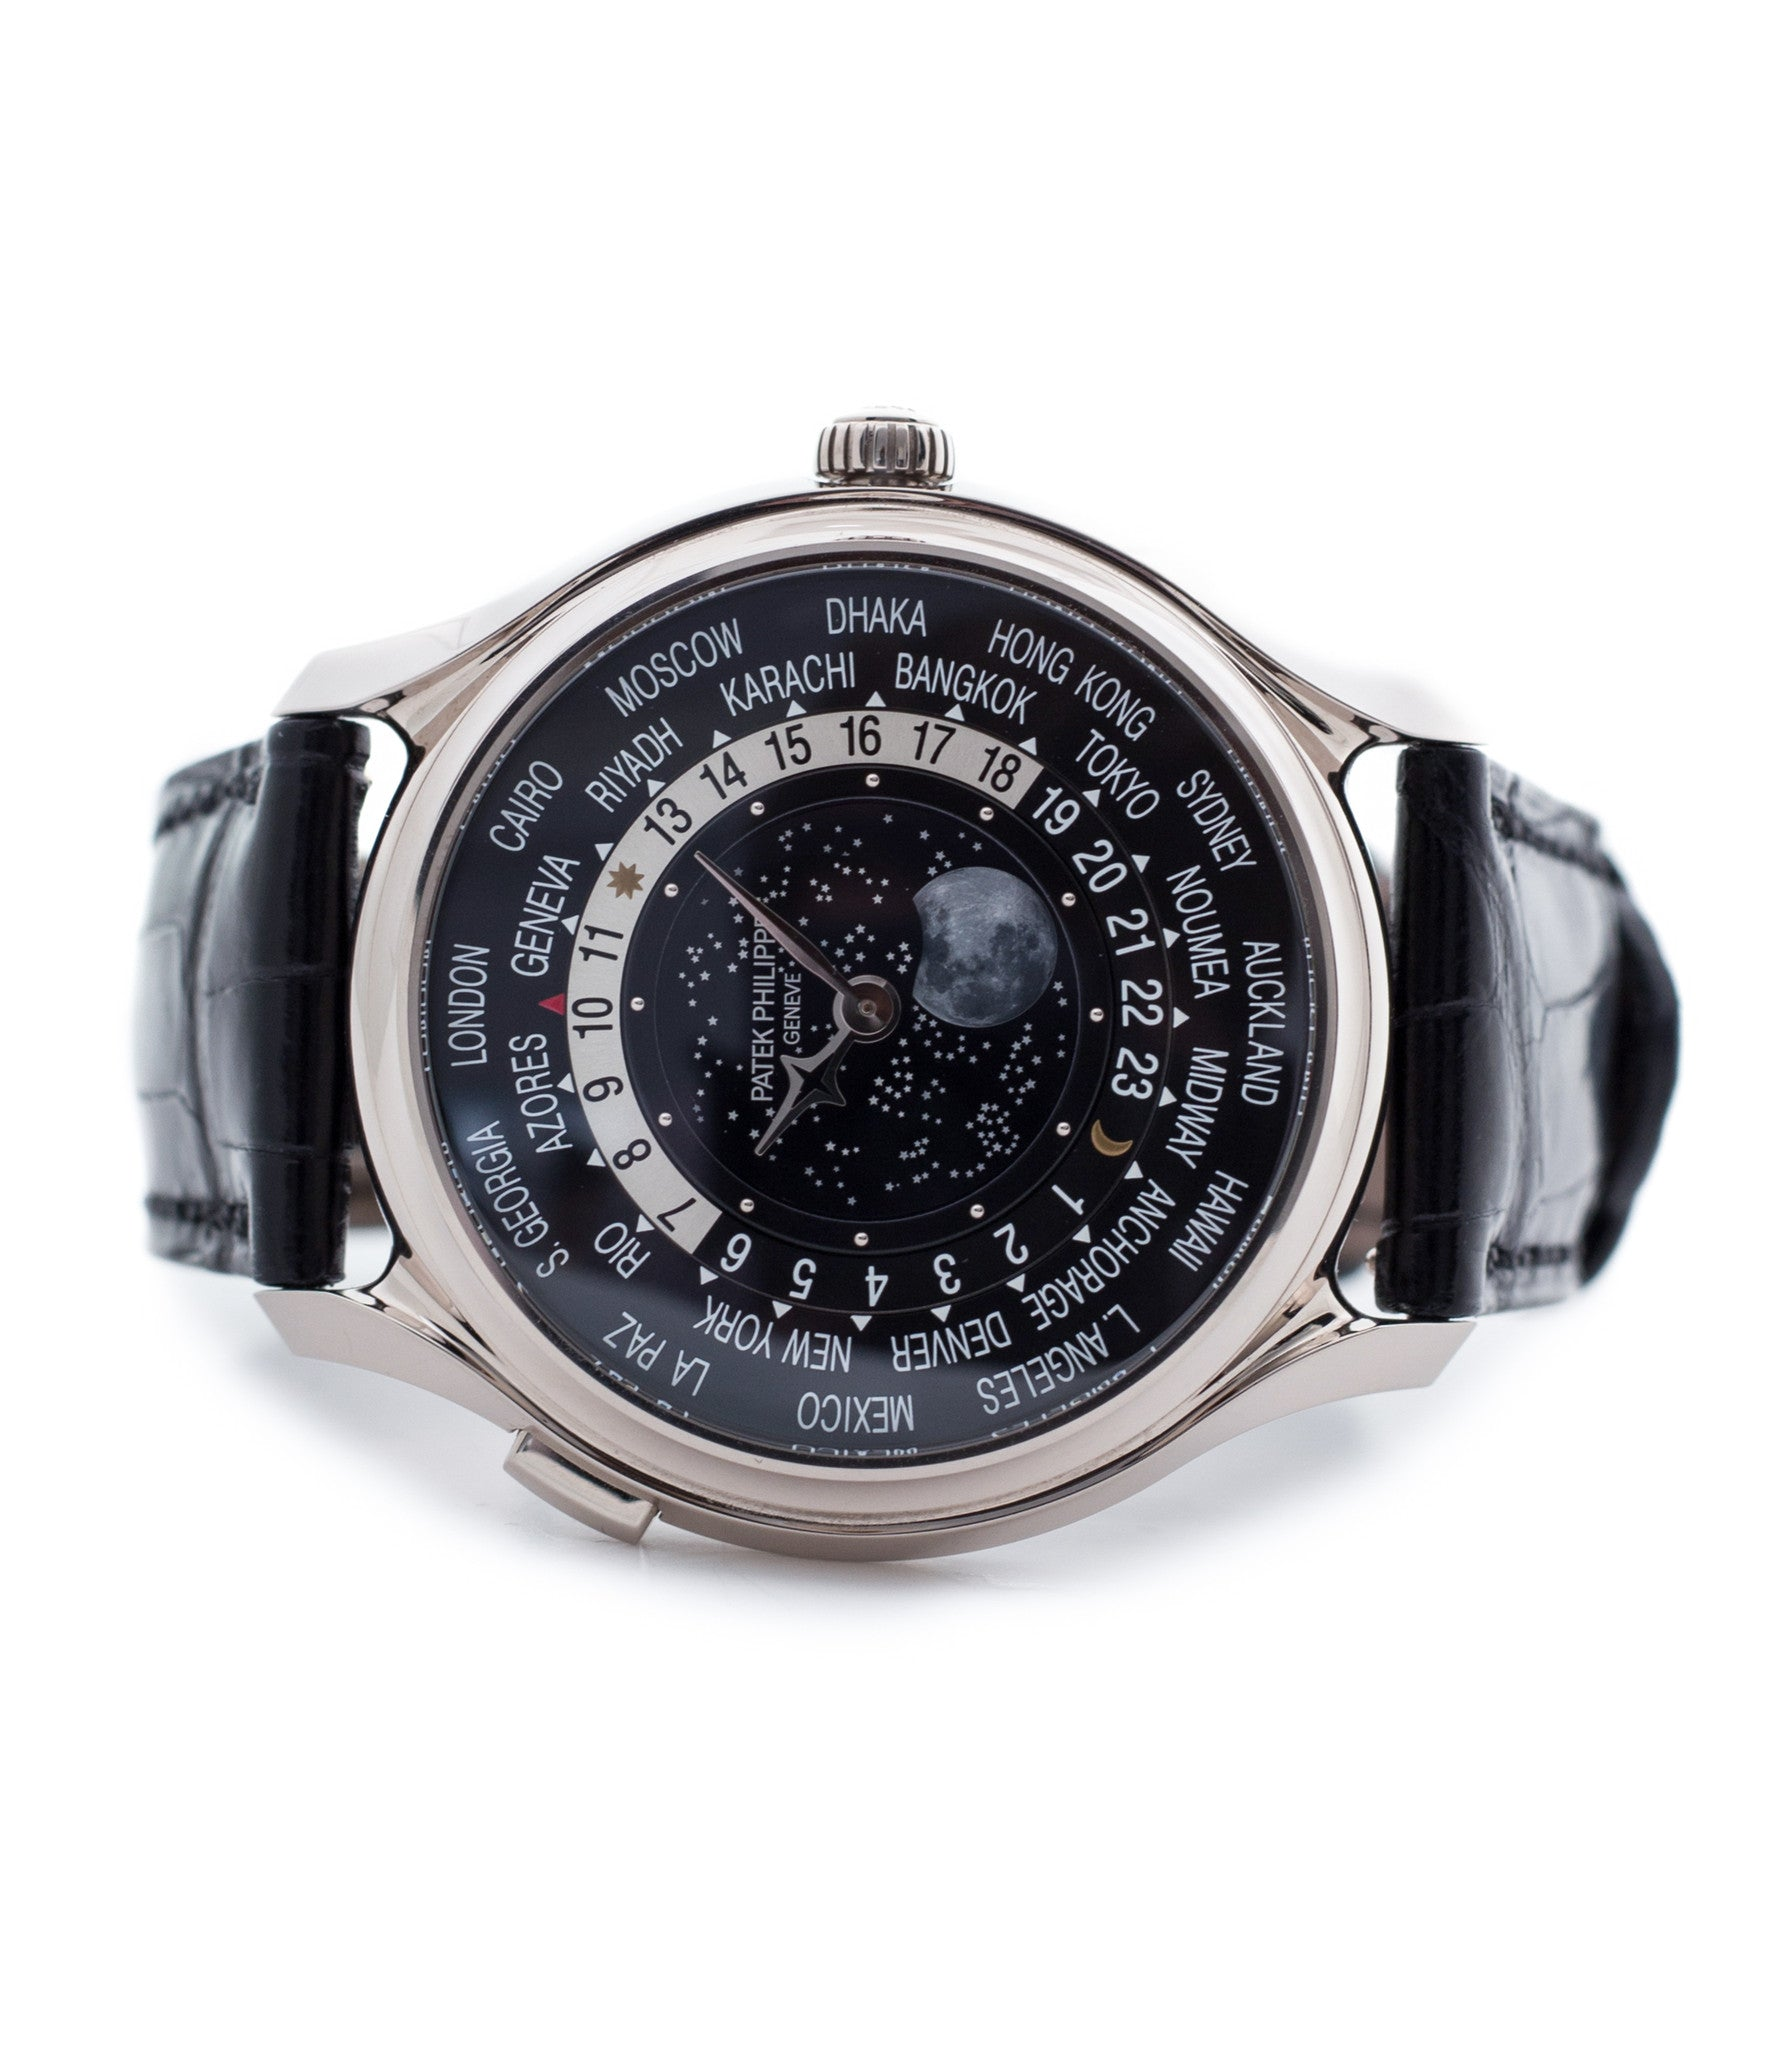 buy Patek Philippe Worldtime Moonphase 5575G rare 175th Anniversary white gold watch online with box, papers and manufacturer's warranty for sale online WATCH XCHANGE London